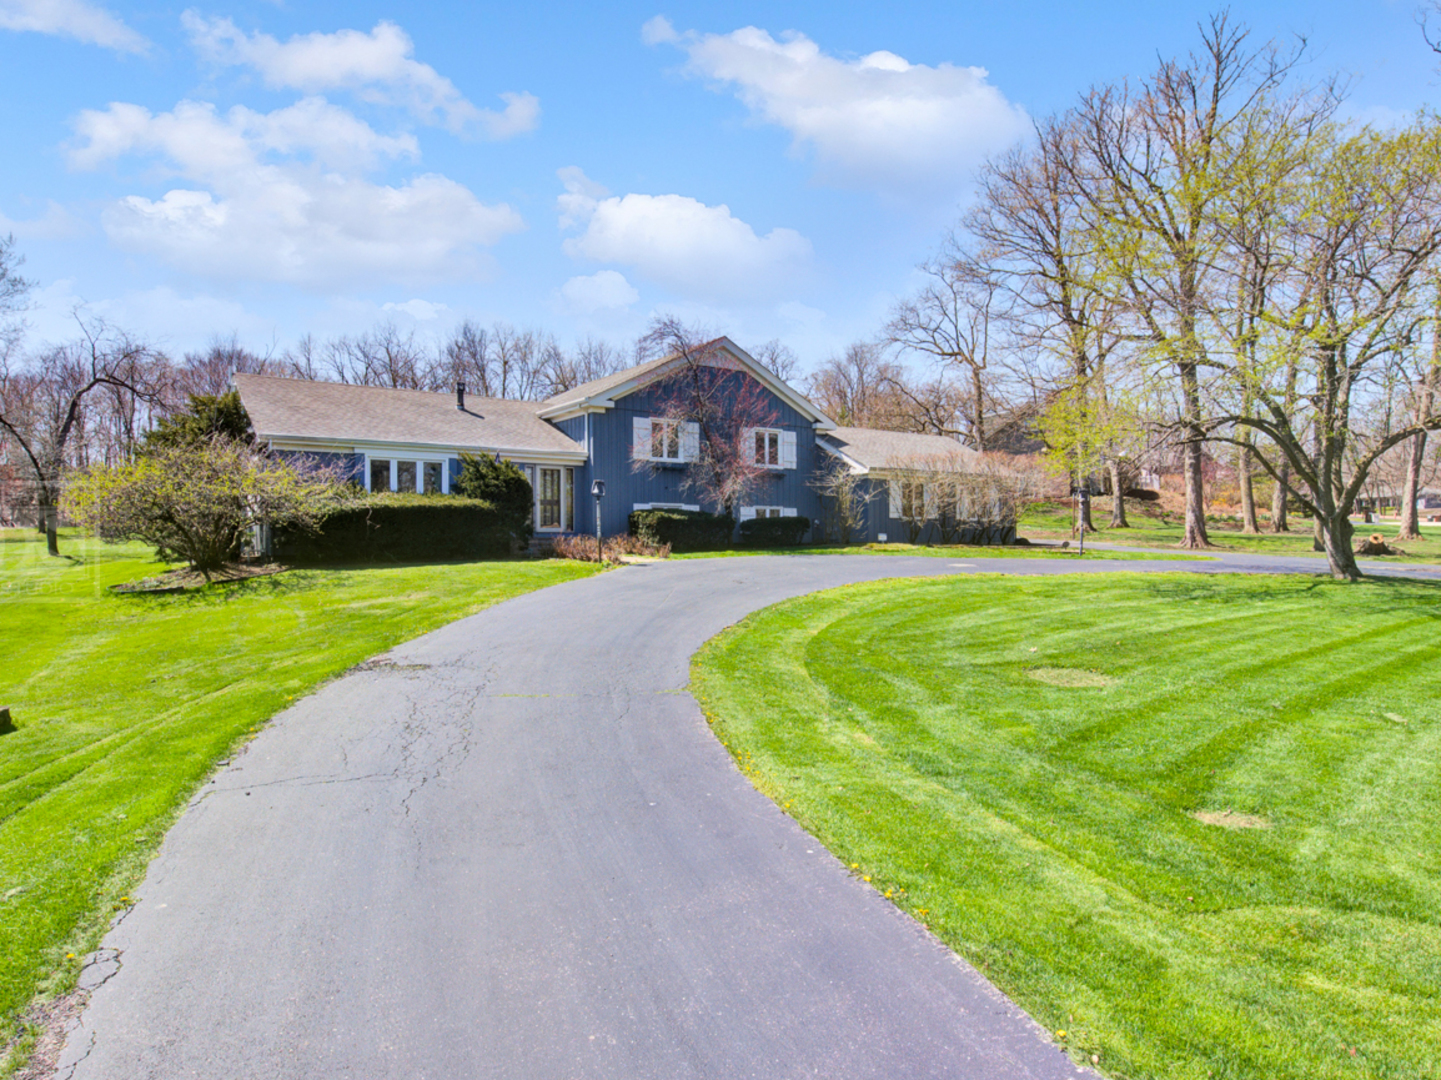 574 Aberdeen Road, Frankfort in Will County, IL 60423 Home for Sale